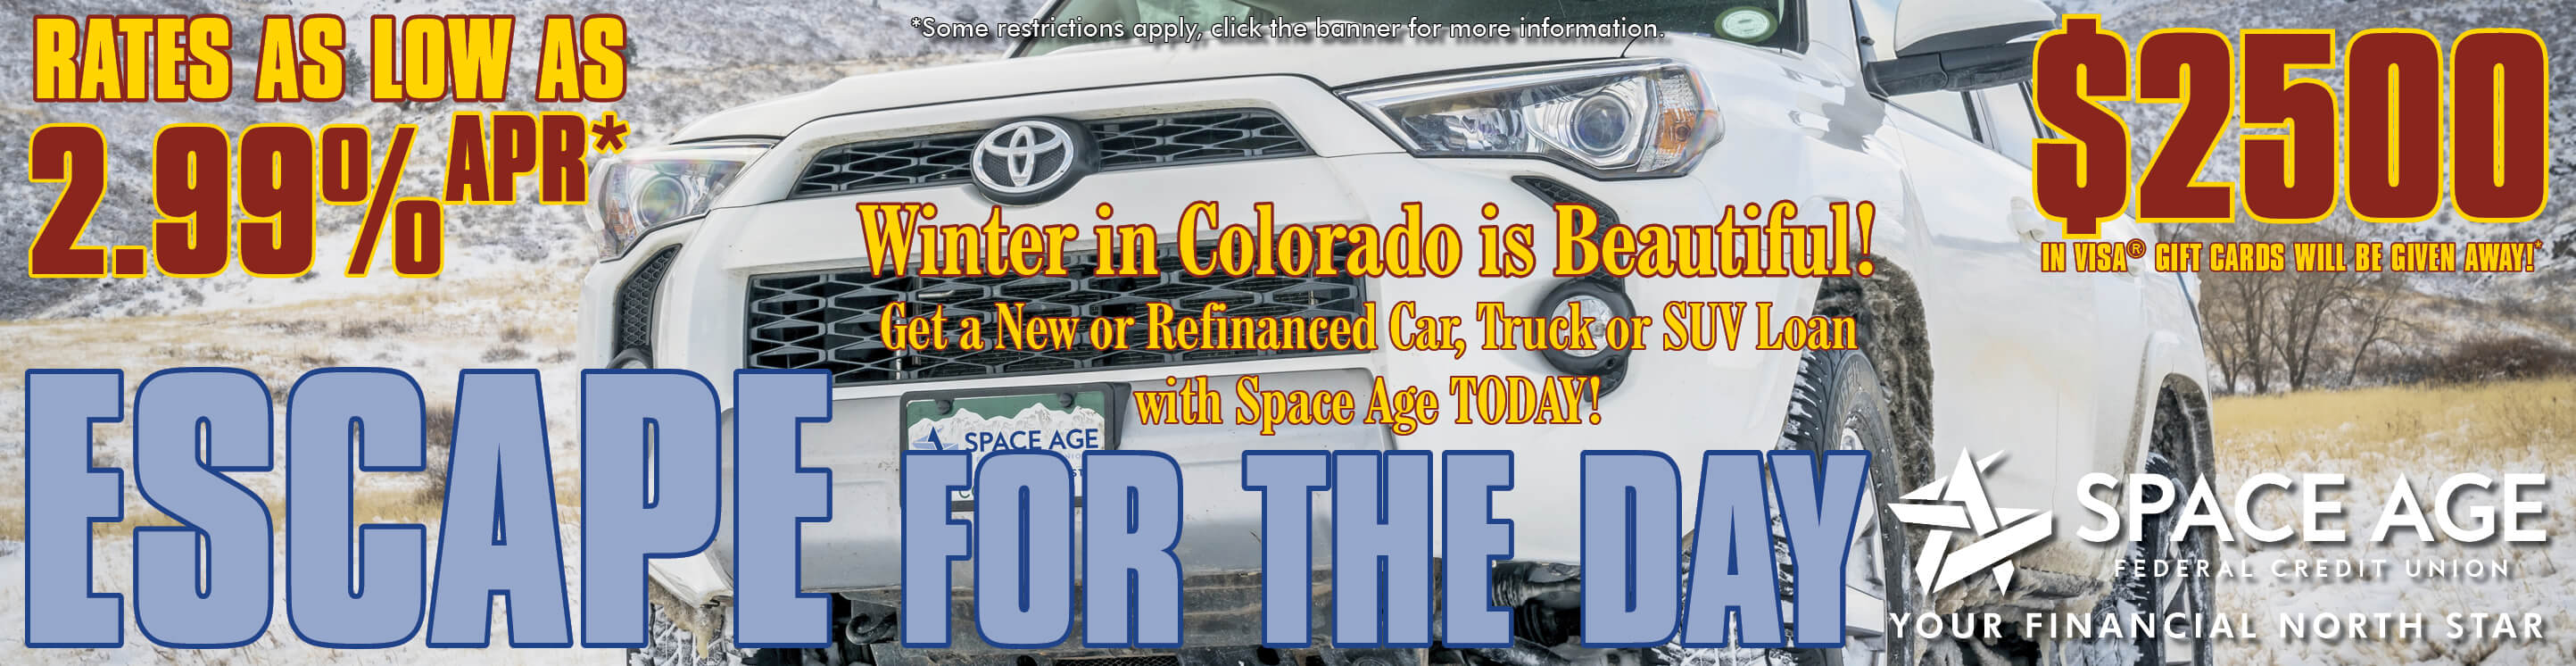 In the banner is a white SUV in from of snow covered Colorado Mountains. The text says, Escape for the Day! Winter is Beautiful in Colorado, Get a New or Refinanced Car, Truck or SUV Loan Today! Rates as low as 2.99% APR.